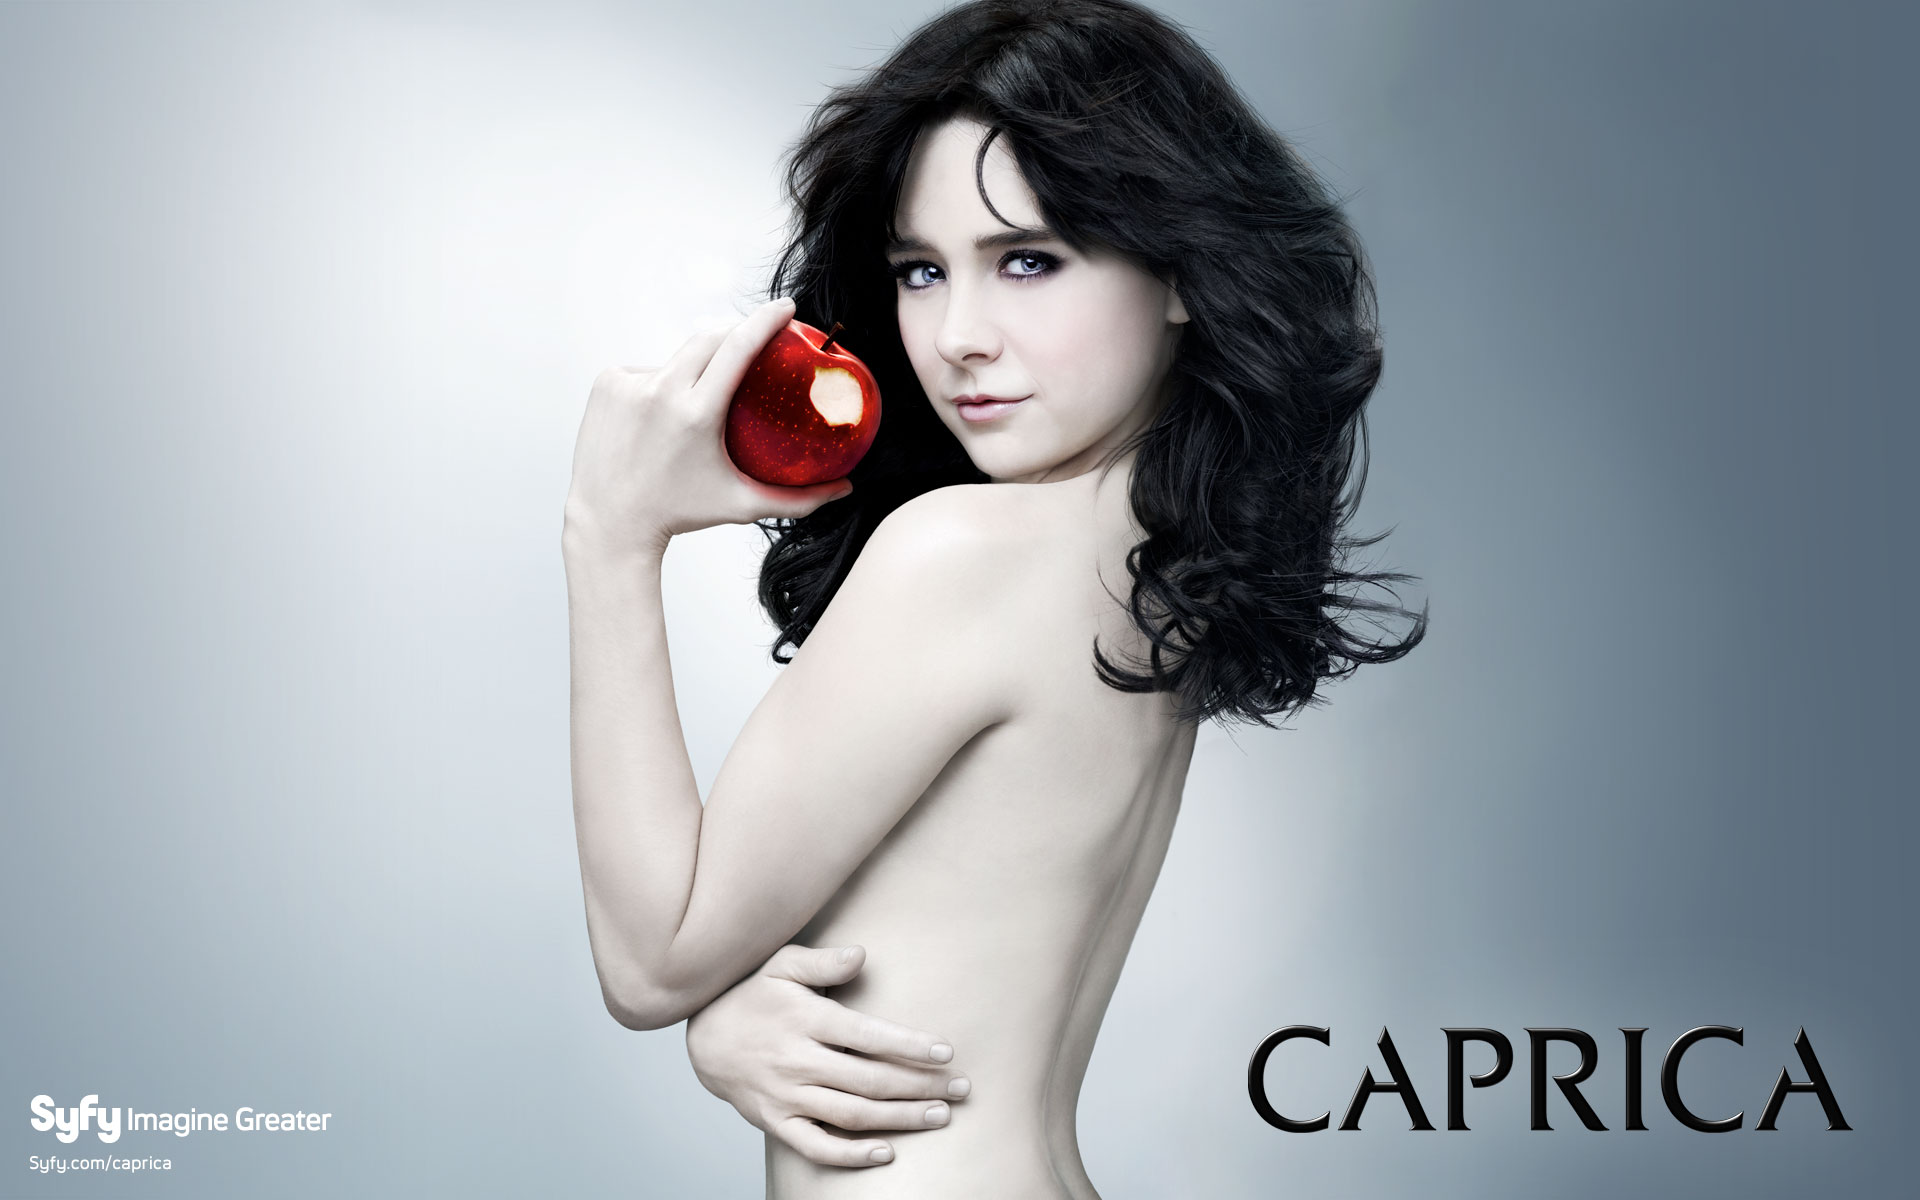 Caprica TV Series 1160.42 Kb